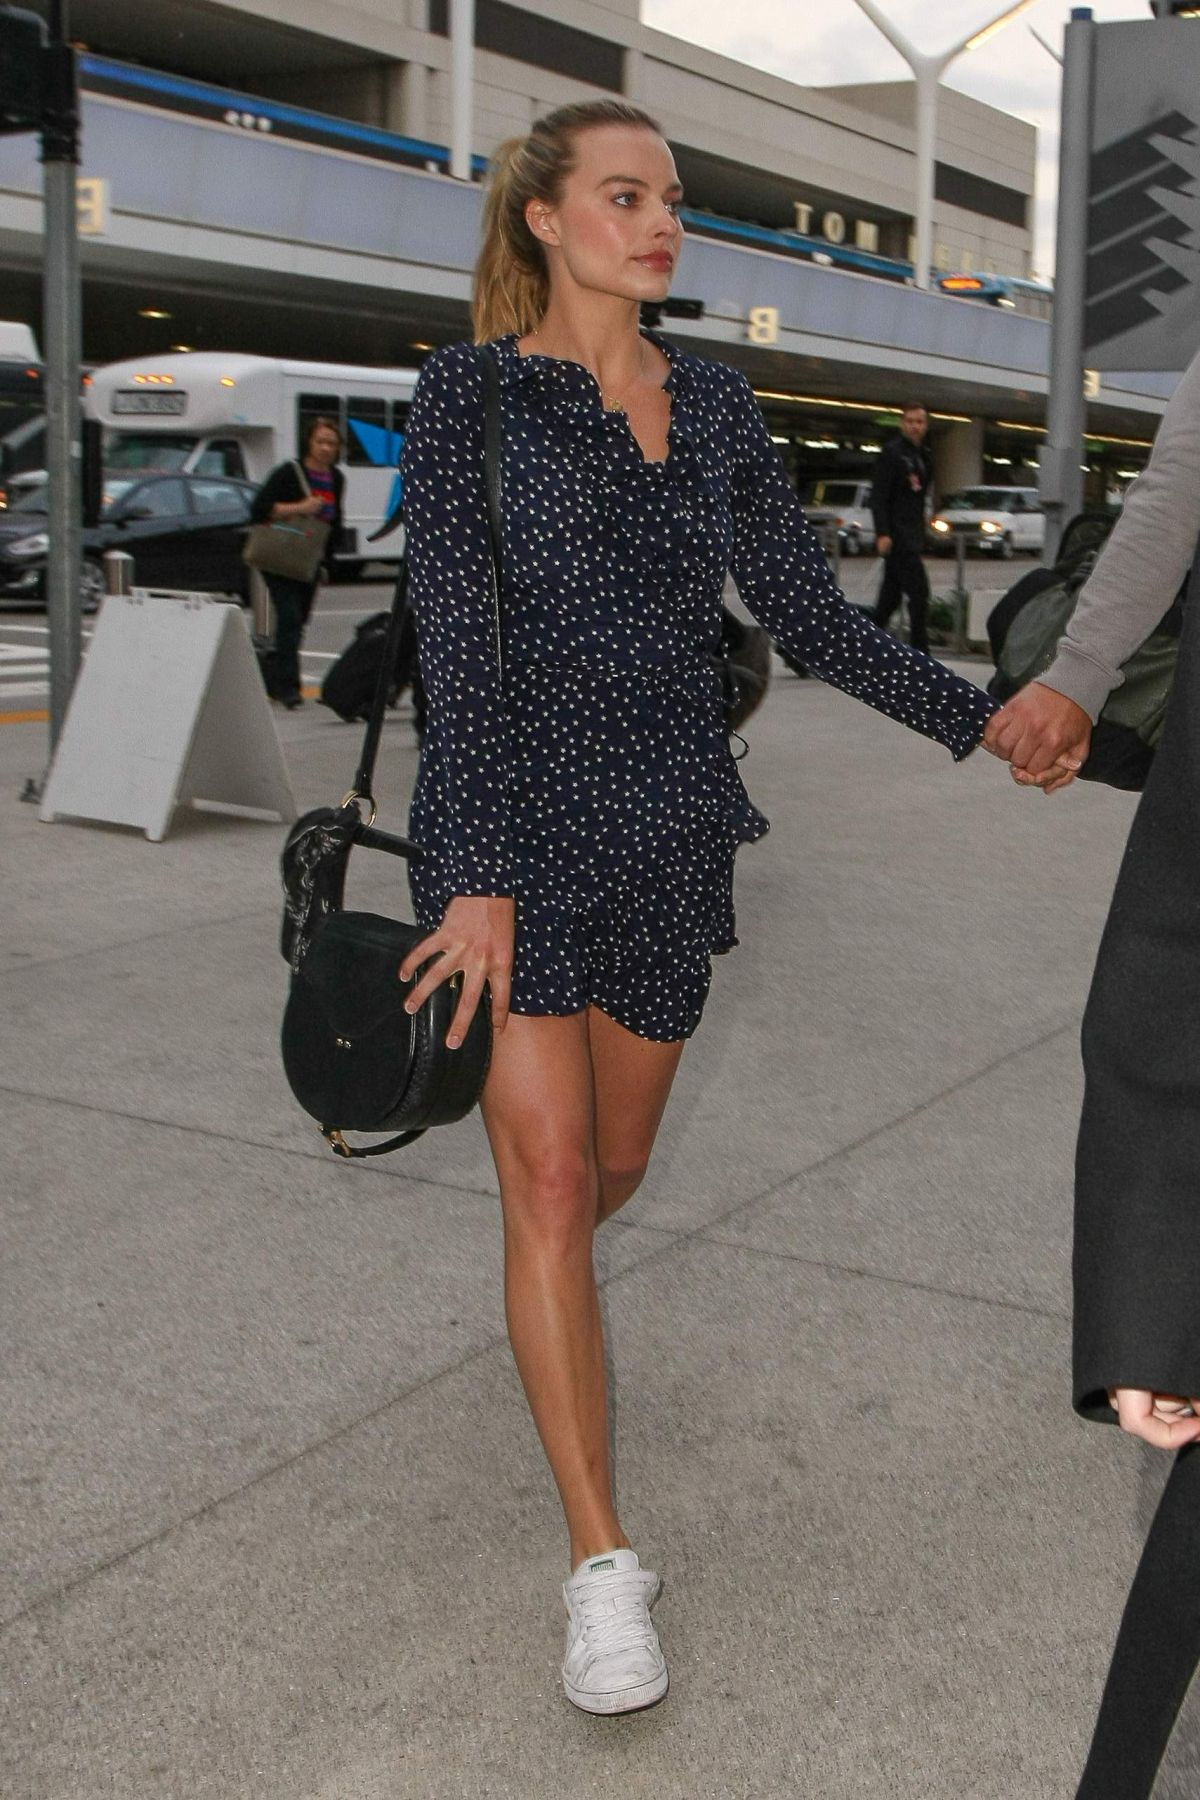 margot robbie at lax airport in los angeles 01022017